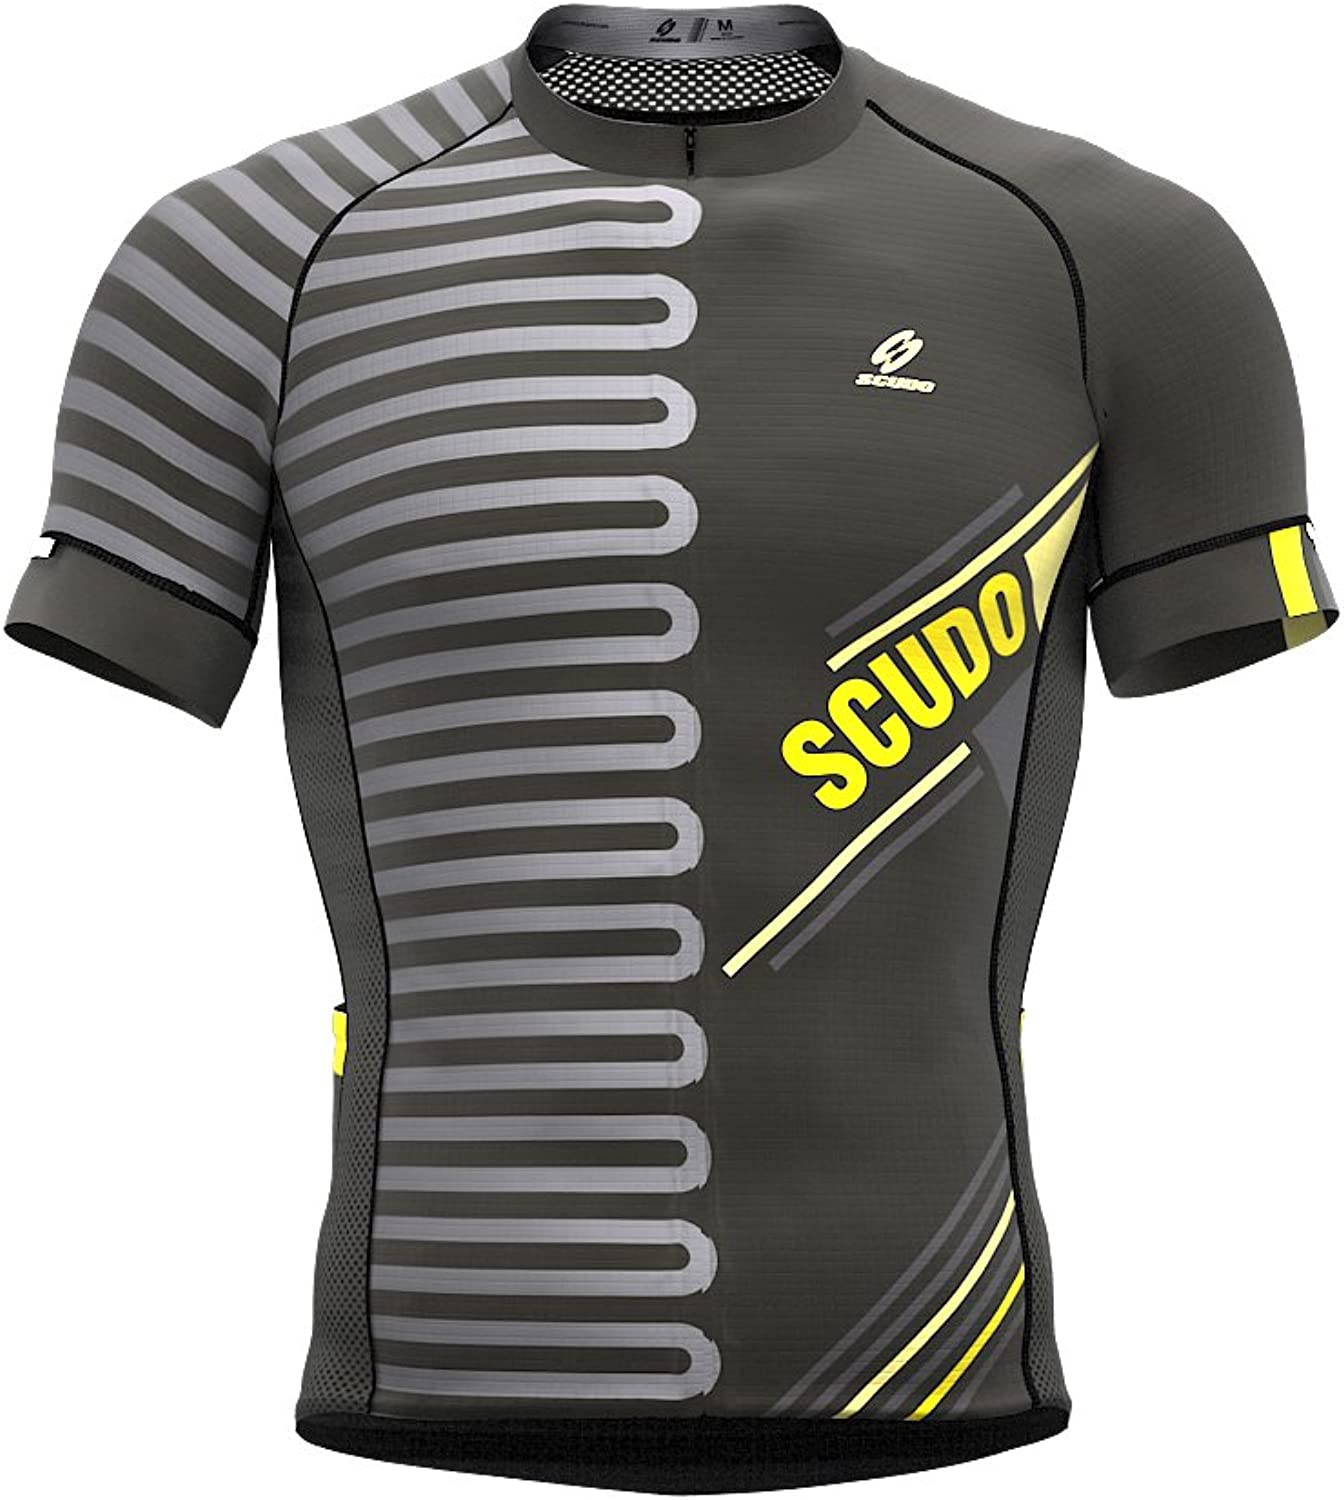 ScudoPro Pedaling Cycling PRO Jersey Short Sleeve for Women